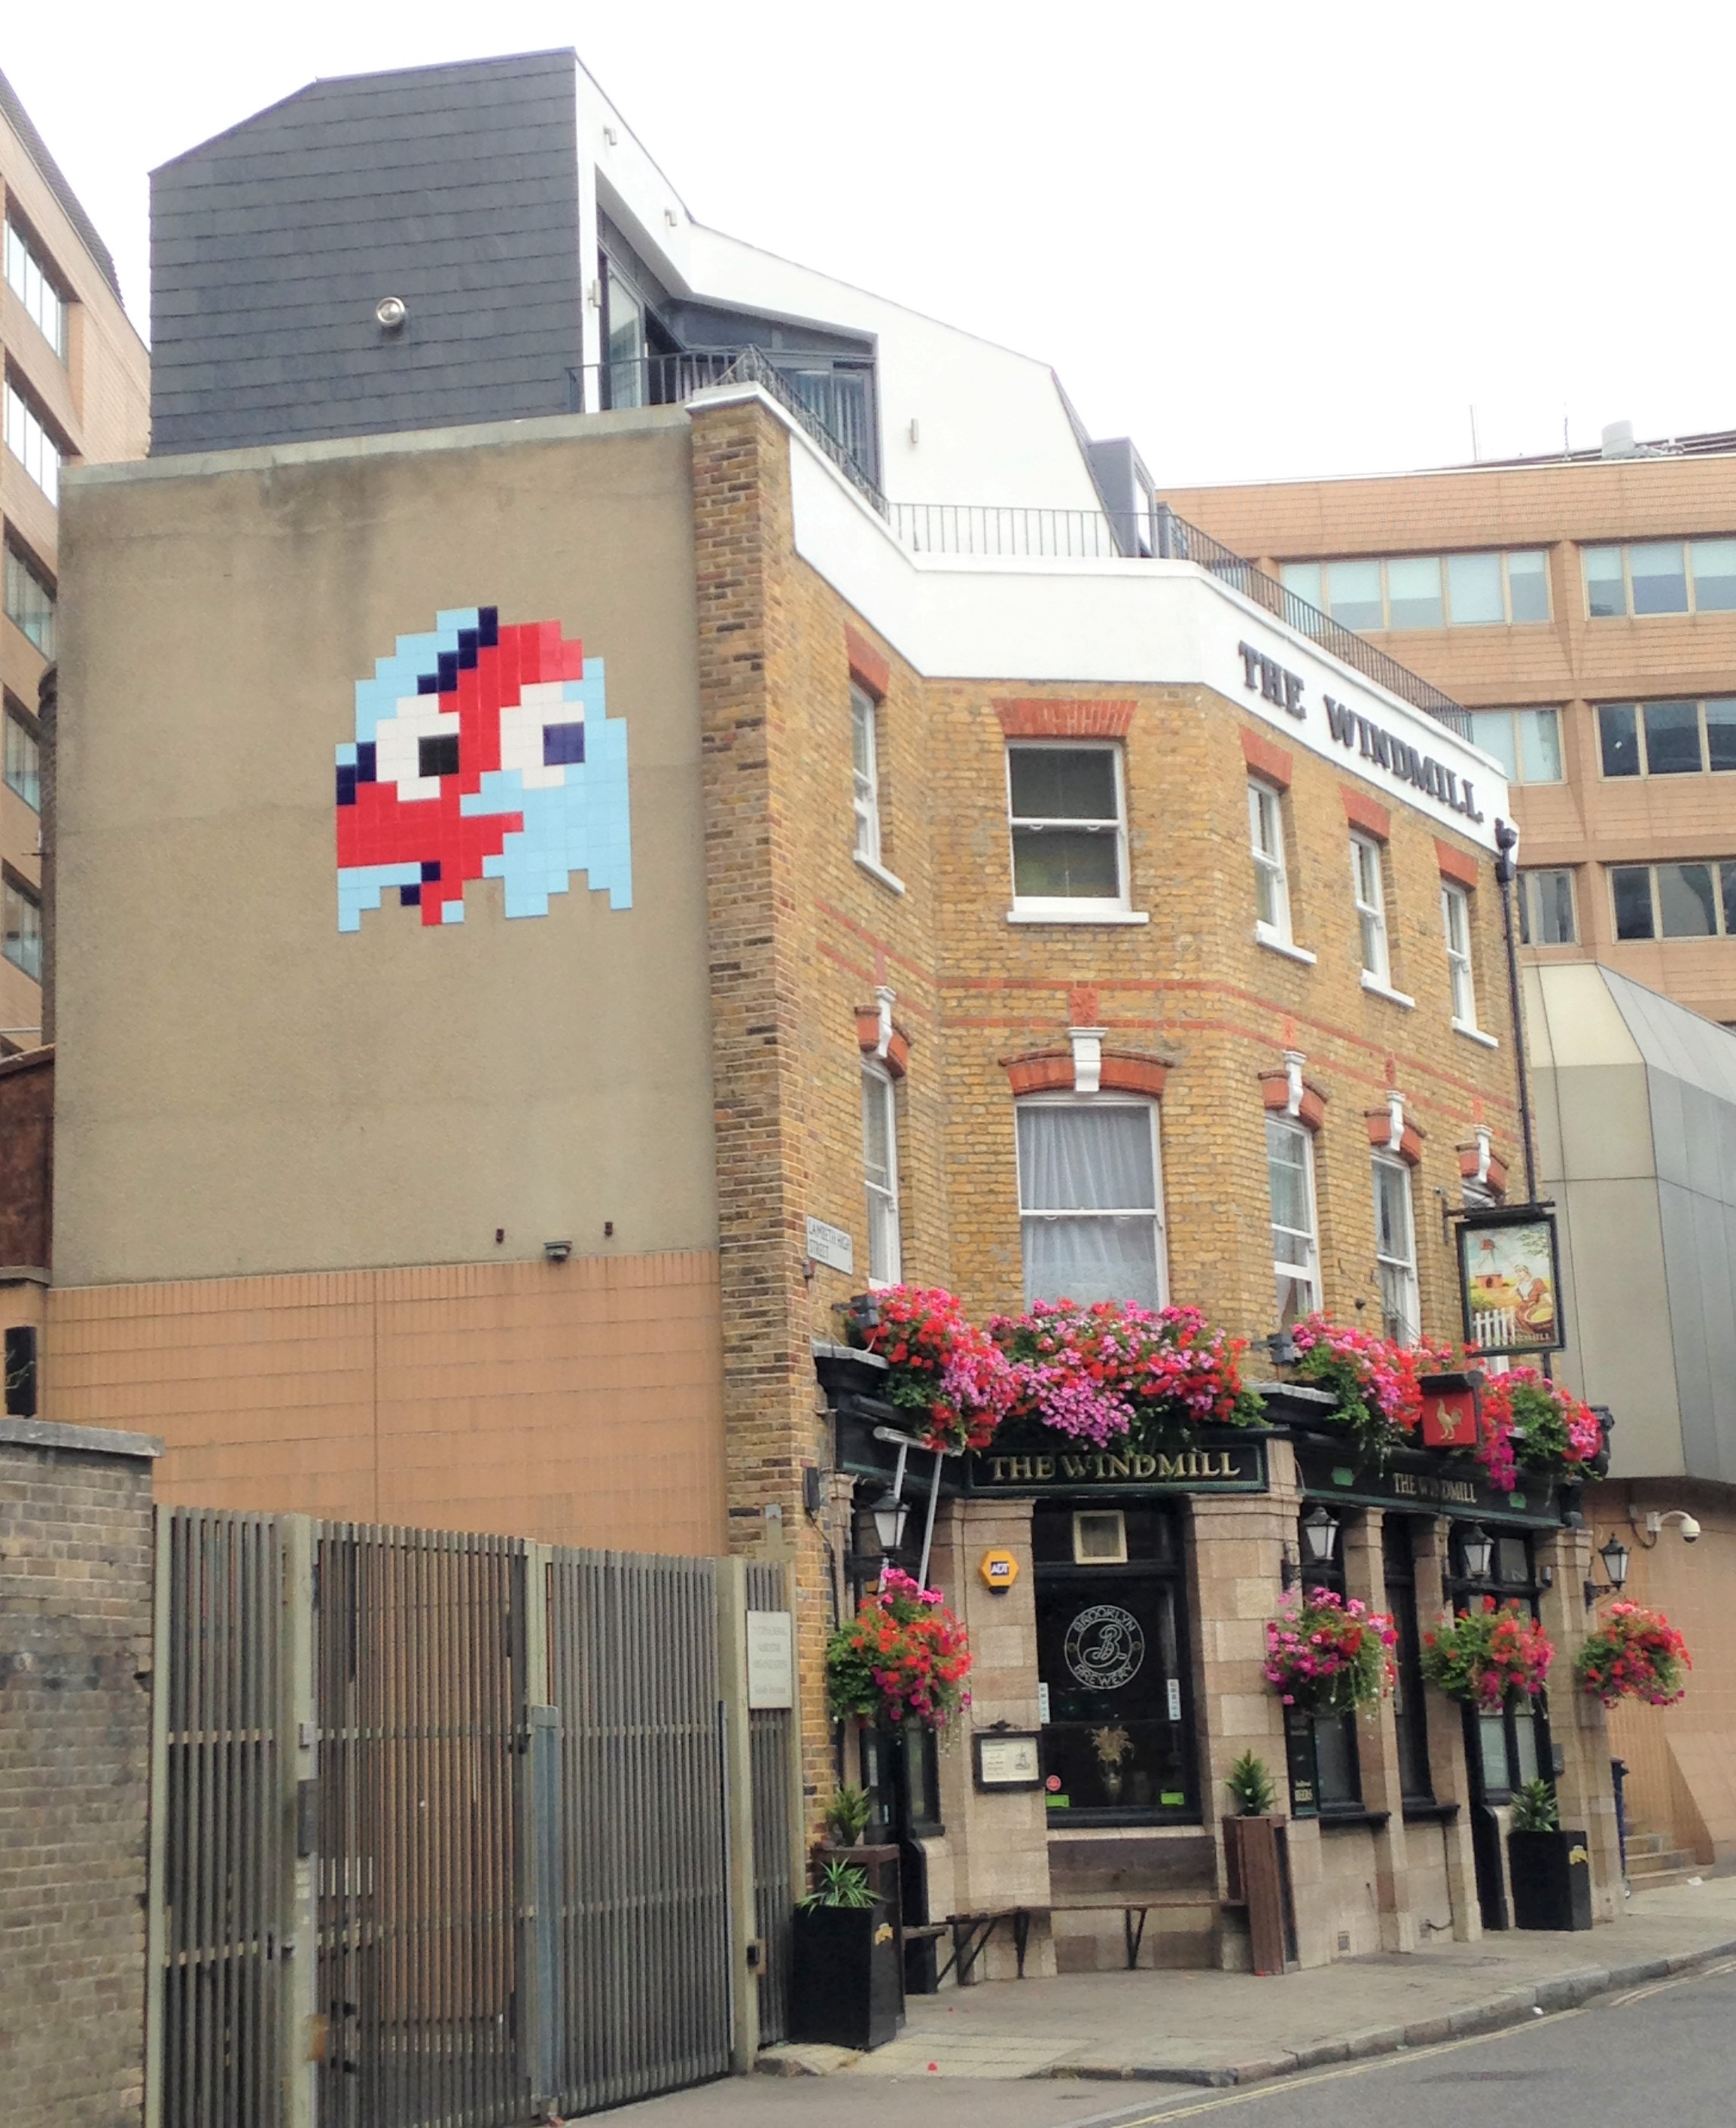 Invader on The Windmill Pub, Lambeth - kenningtonrunoff.com